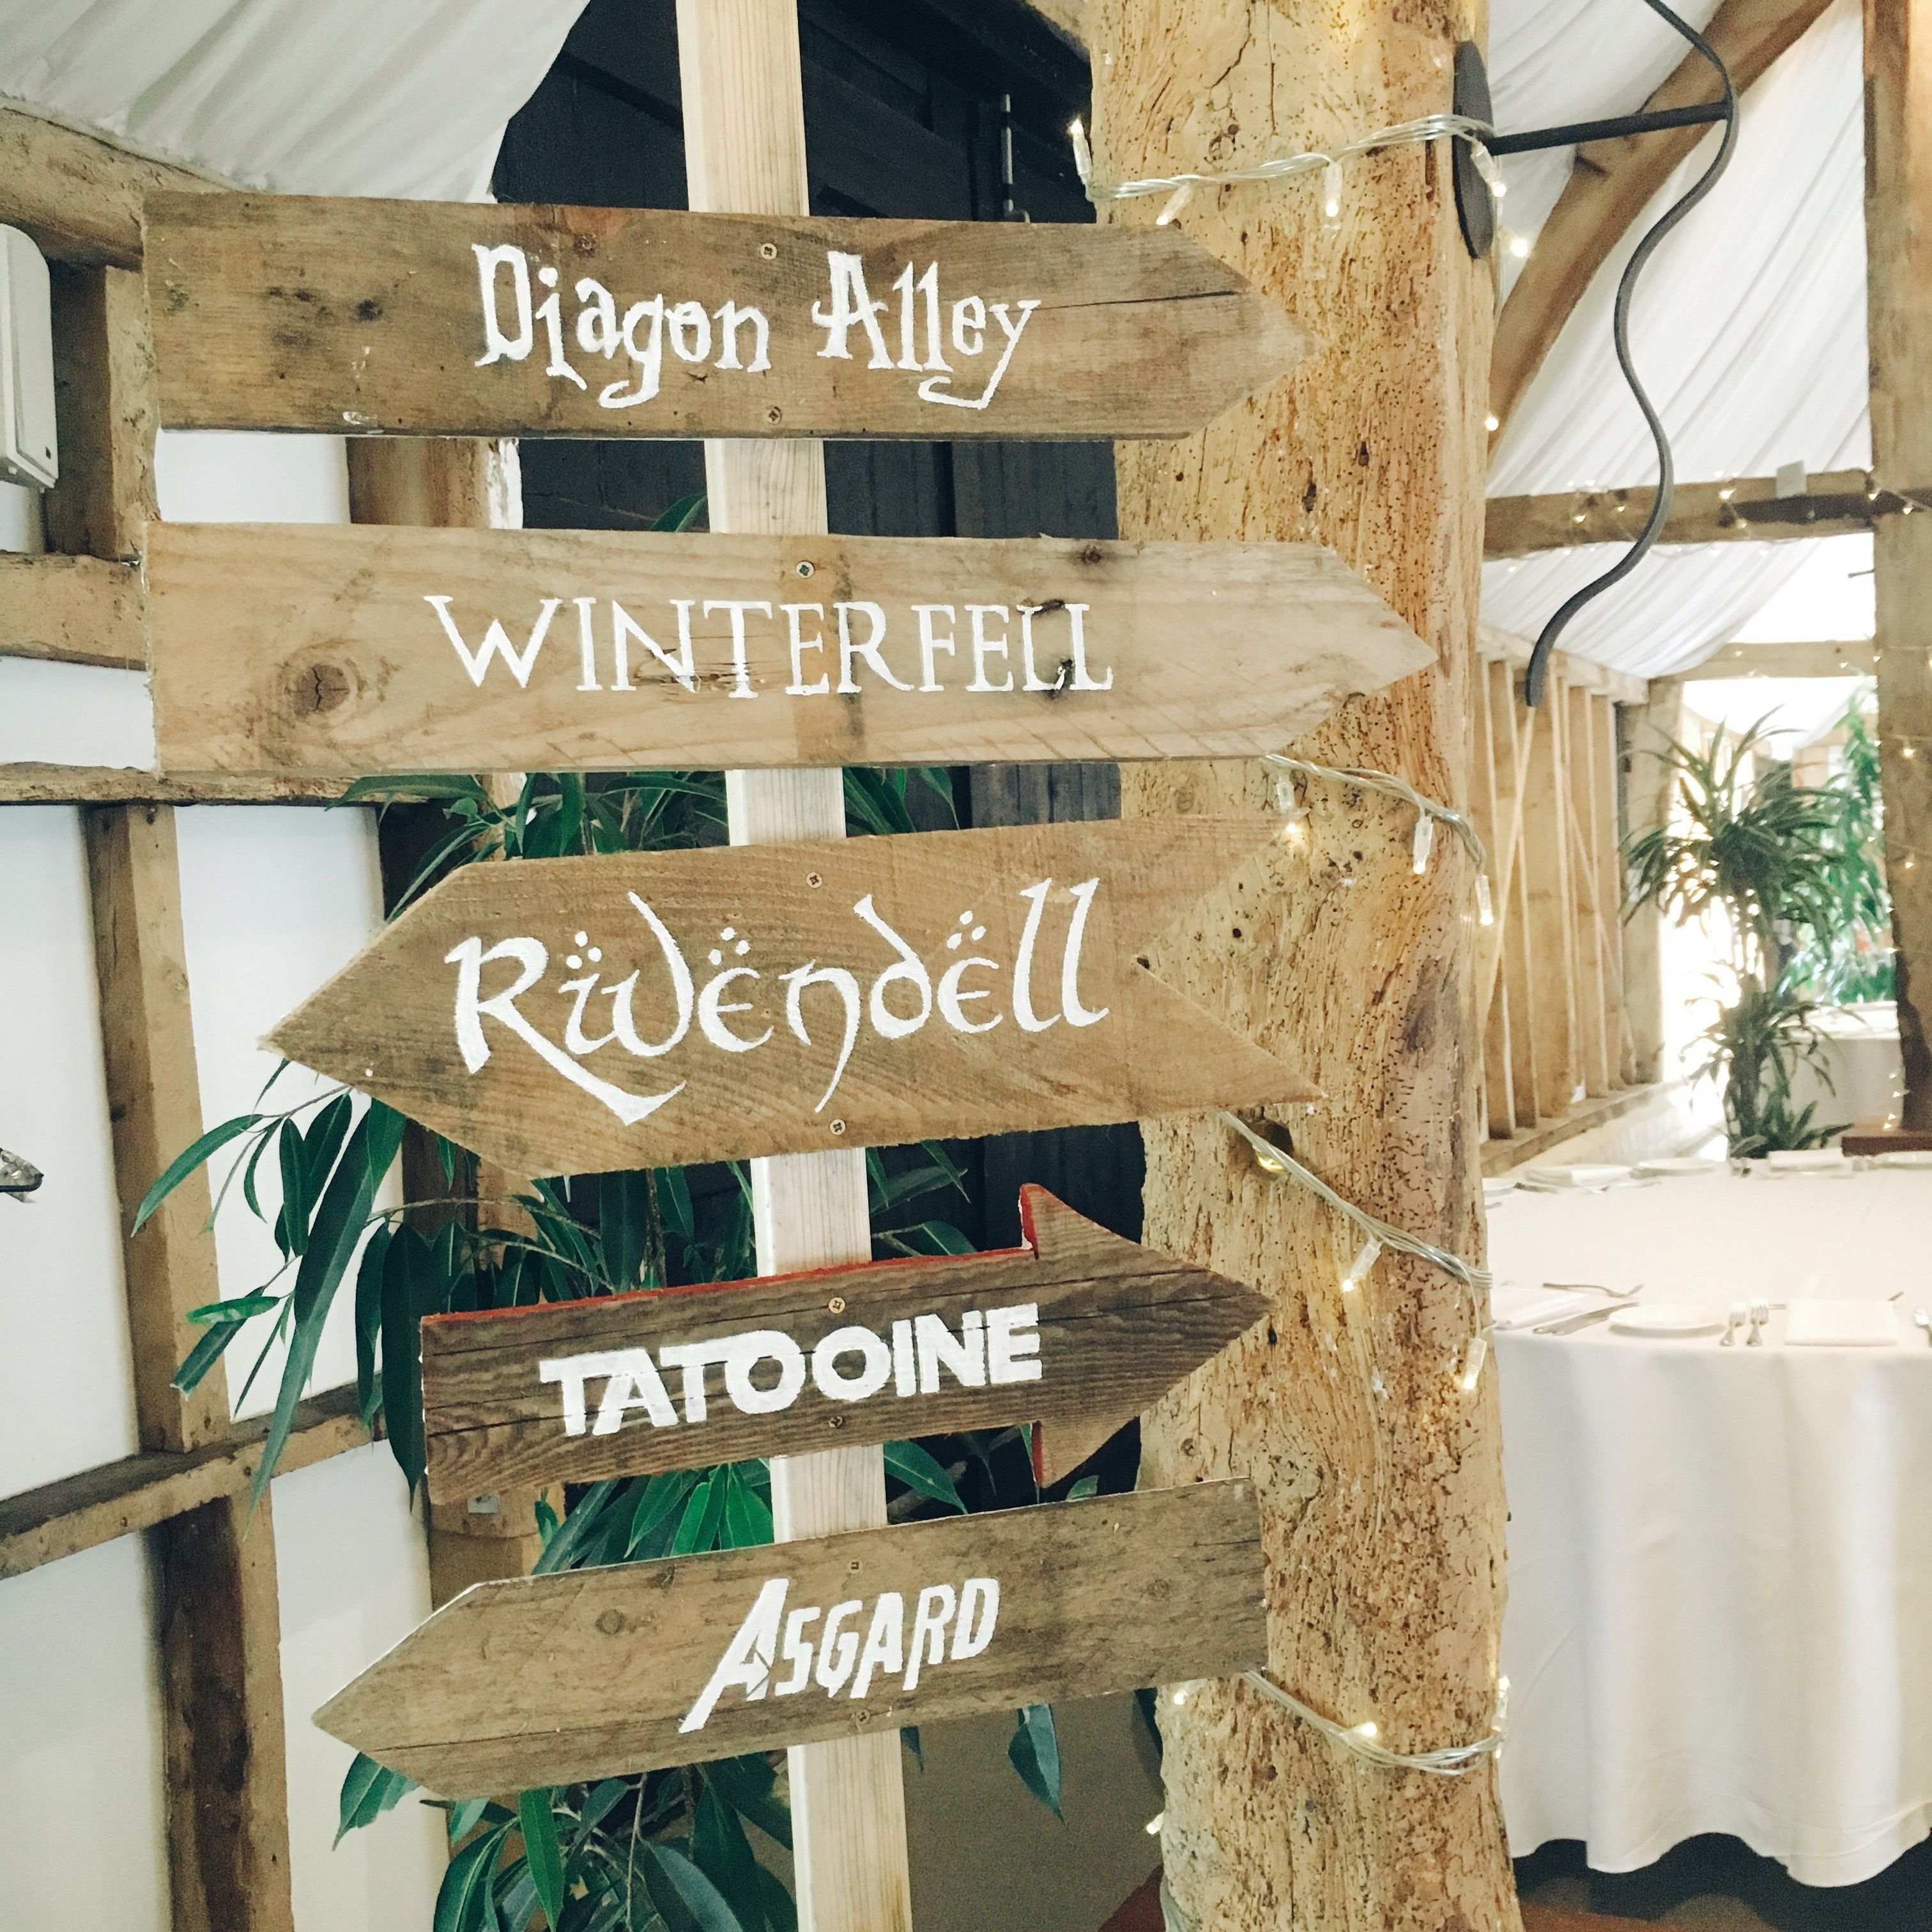 Harry Potter Lord Of The Rings Wedding Signage Made By Fleur De